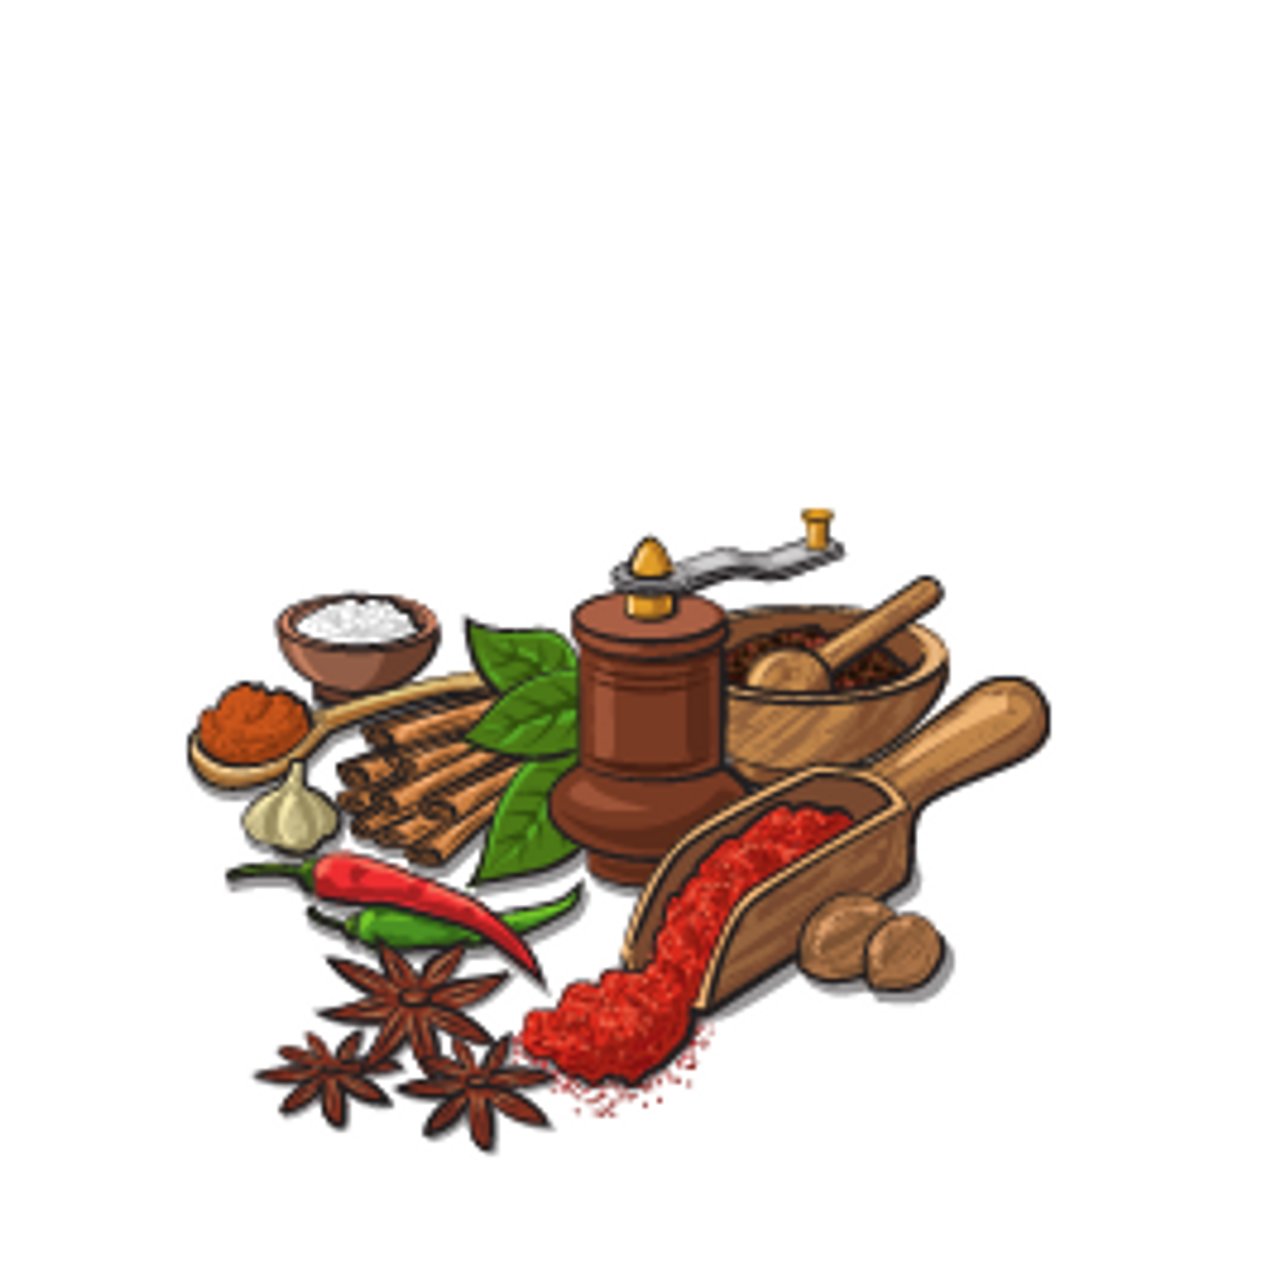 SPICES & SEASONINGS (INCL. DRIED HERBS)